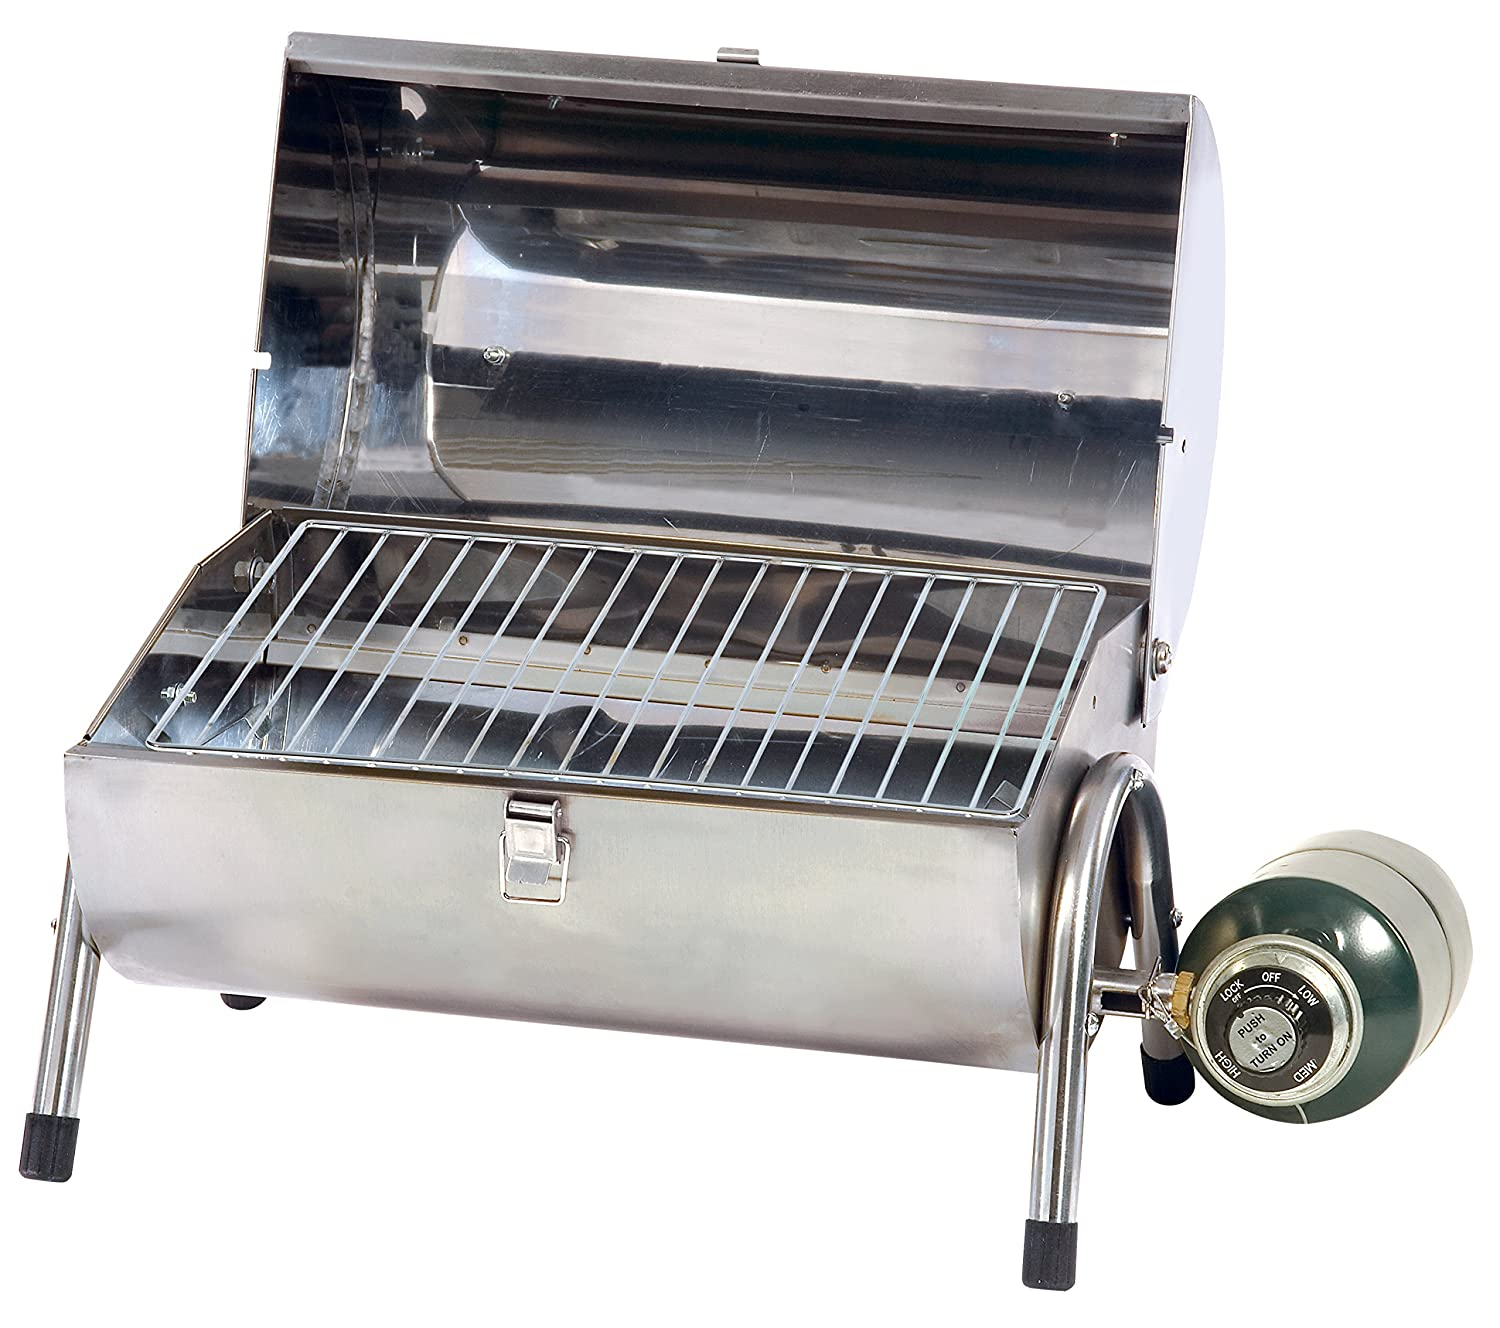 Superior Amazon.com : Stansport Propane Stainless Steel BBQ Grill : Sports U0026 Outdoors